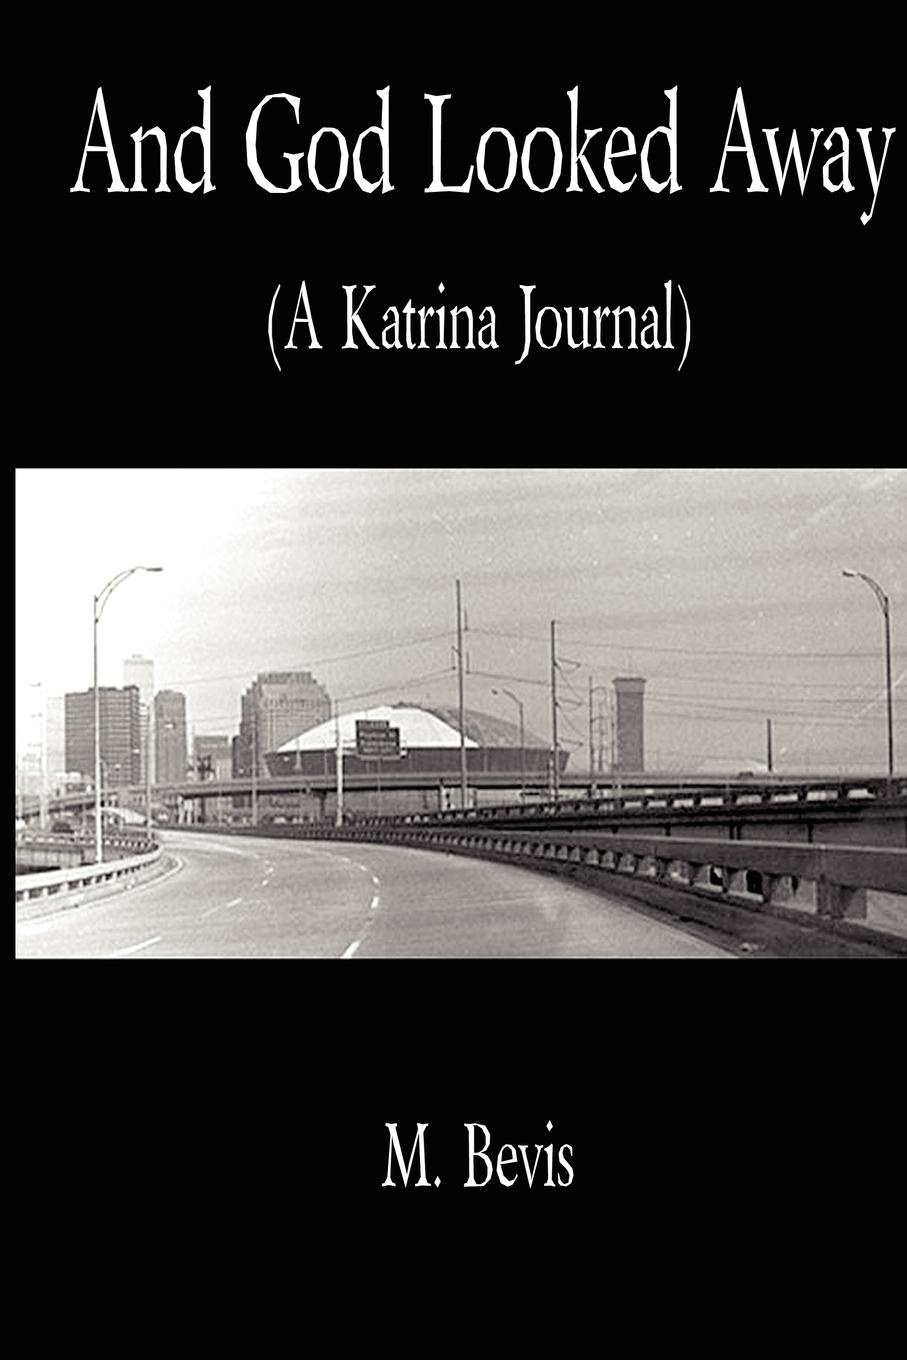 Michael Jr. Bevis And God Looked Away. A Katrina Journal william a mitchell jr exploring thailand 01 rice farming a nereusmedia journal series